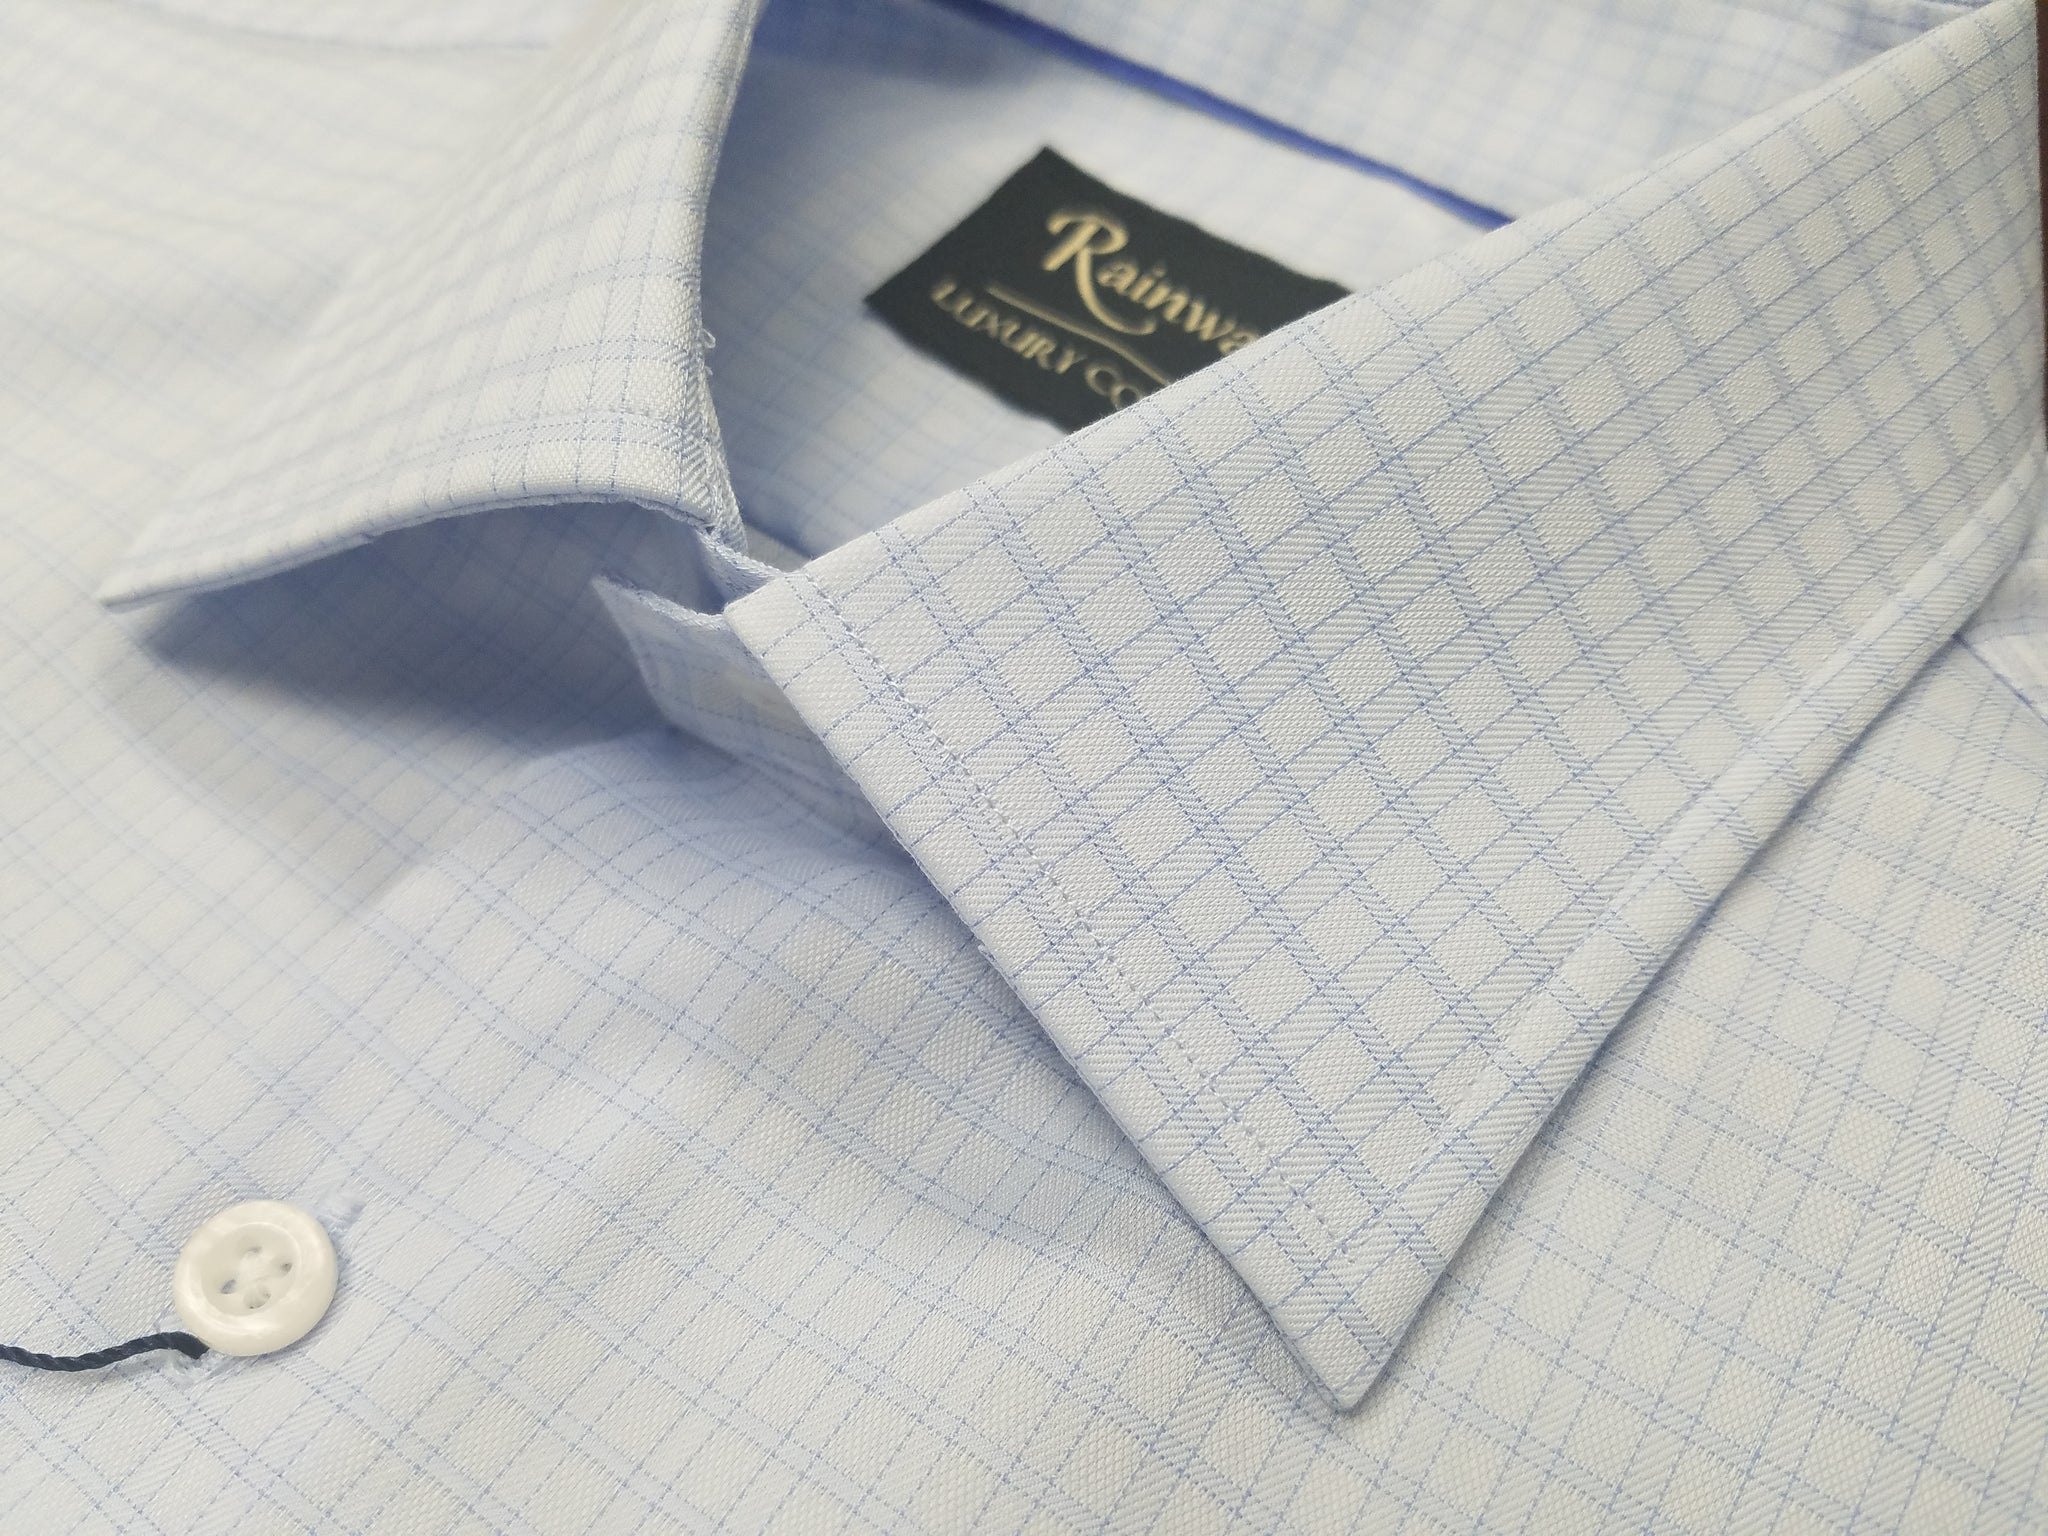 Rainwater's 100% Cotton 100's Two Ply Light Blue Small Check Spread Collar Dress Shirt - Rainwater's Men's Clothing and Tuxedo Rental